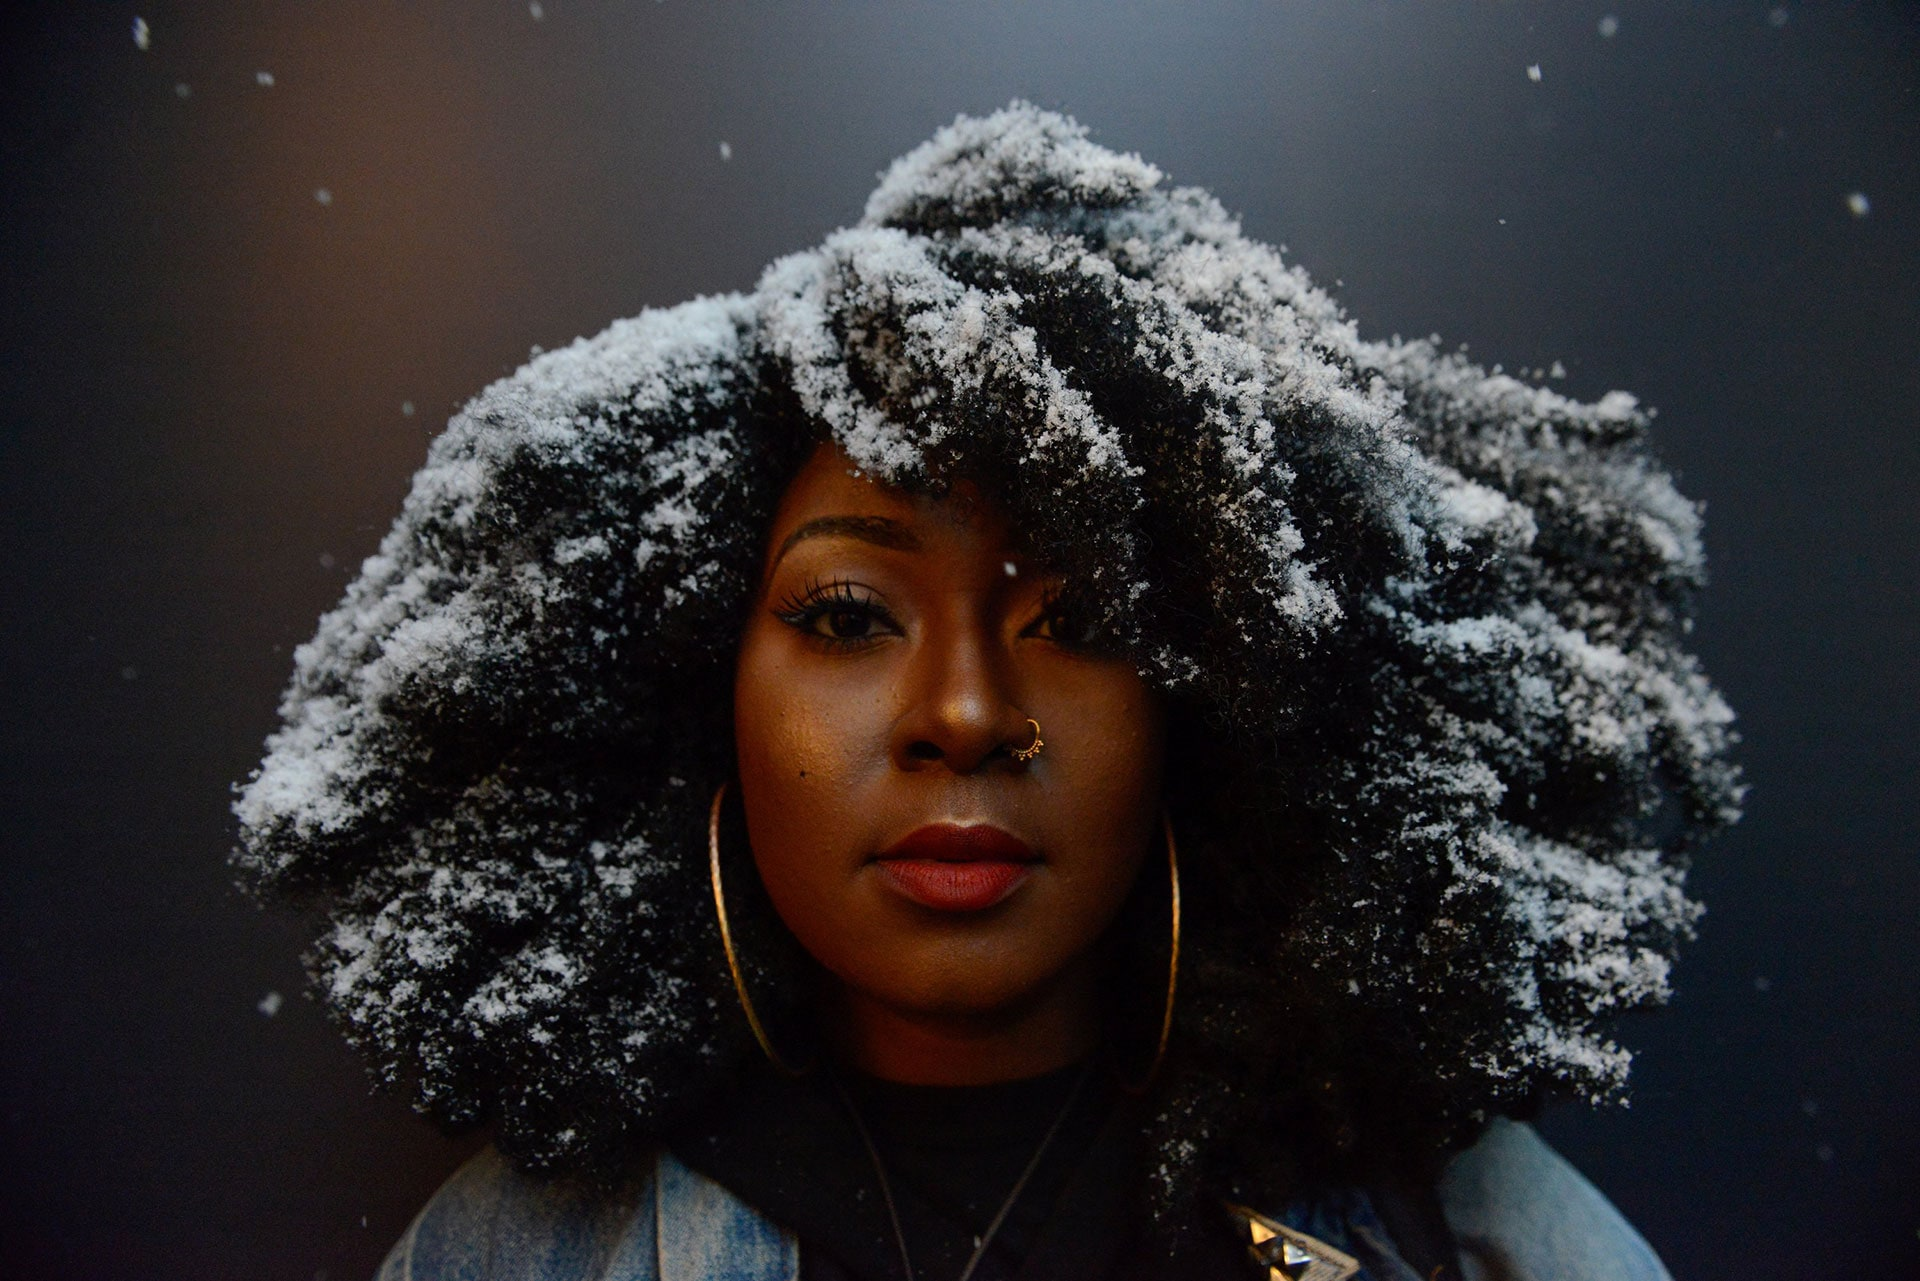 Snow covers Kandy Freeman's hair as she participates in a Black Lives Matter protest